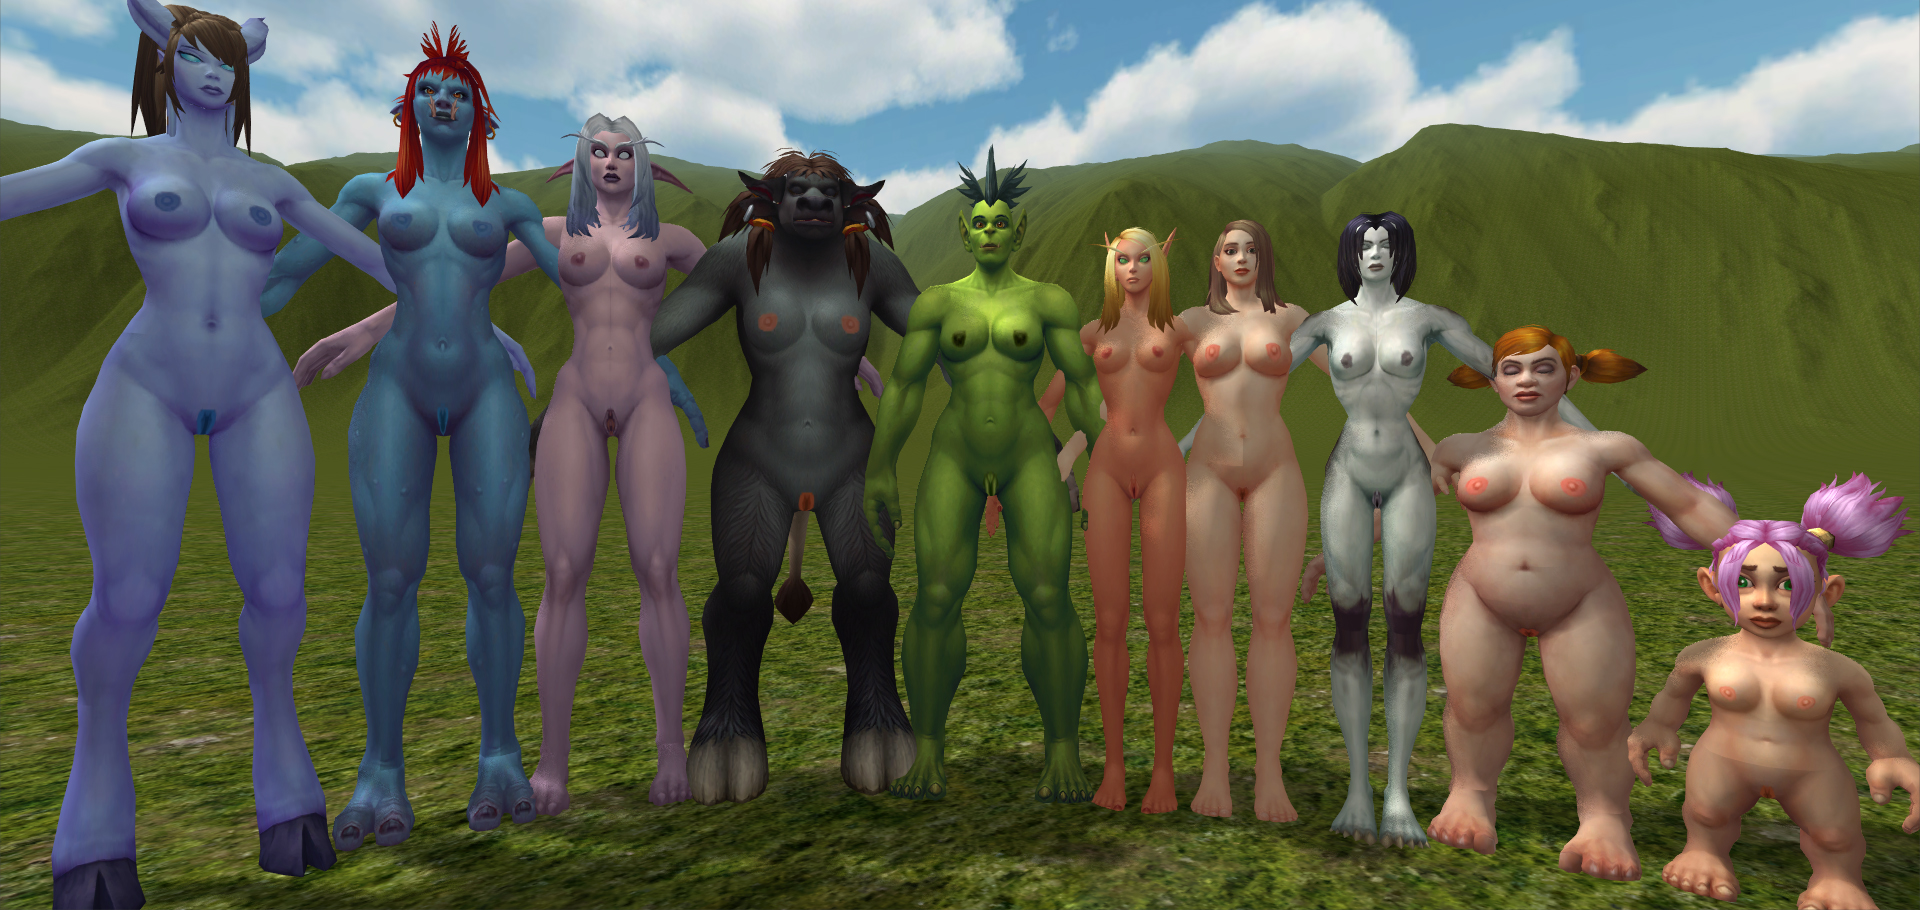 Night elves nude mod anime images